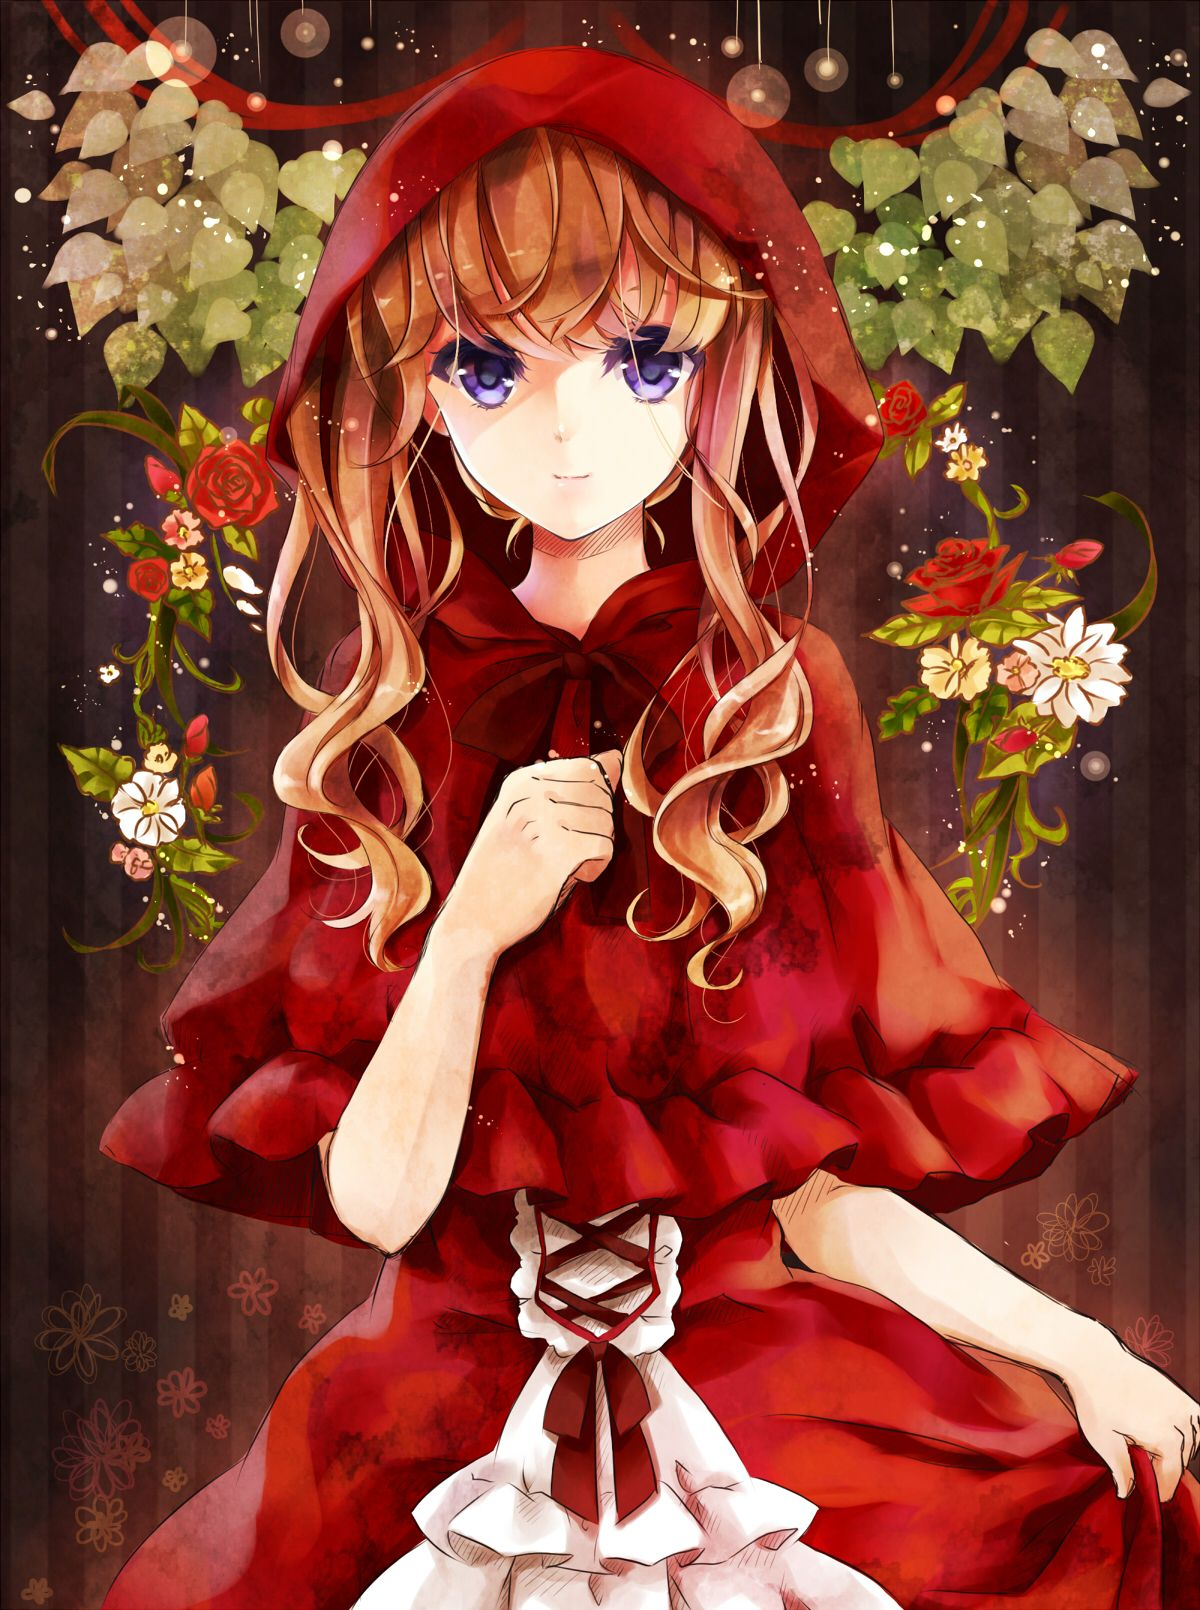 Anime Picture Original Puracotte Long Hair Single Tall Image